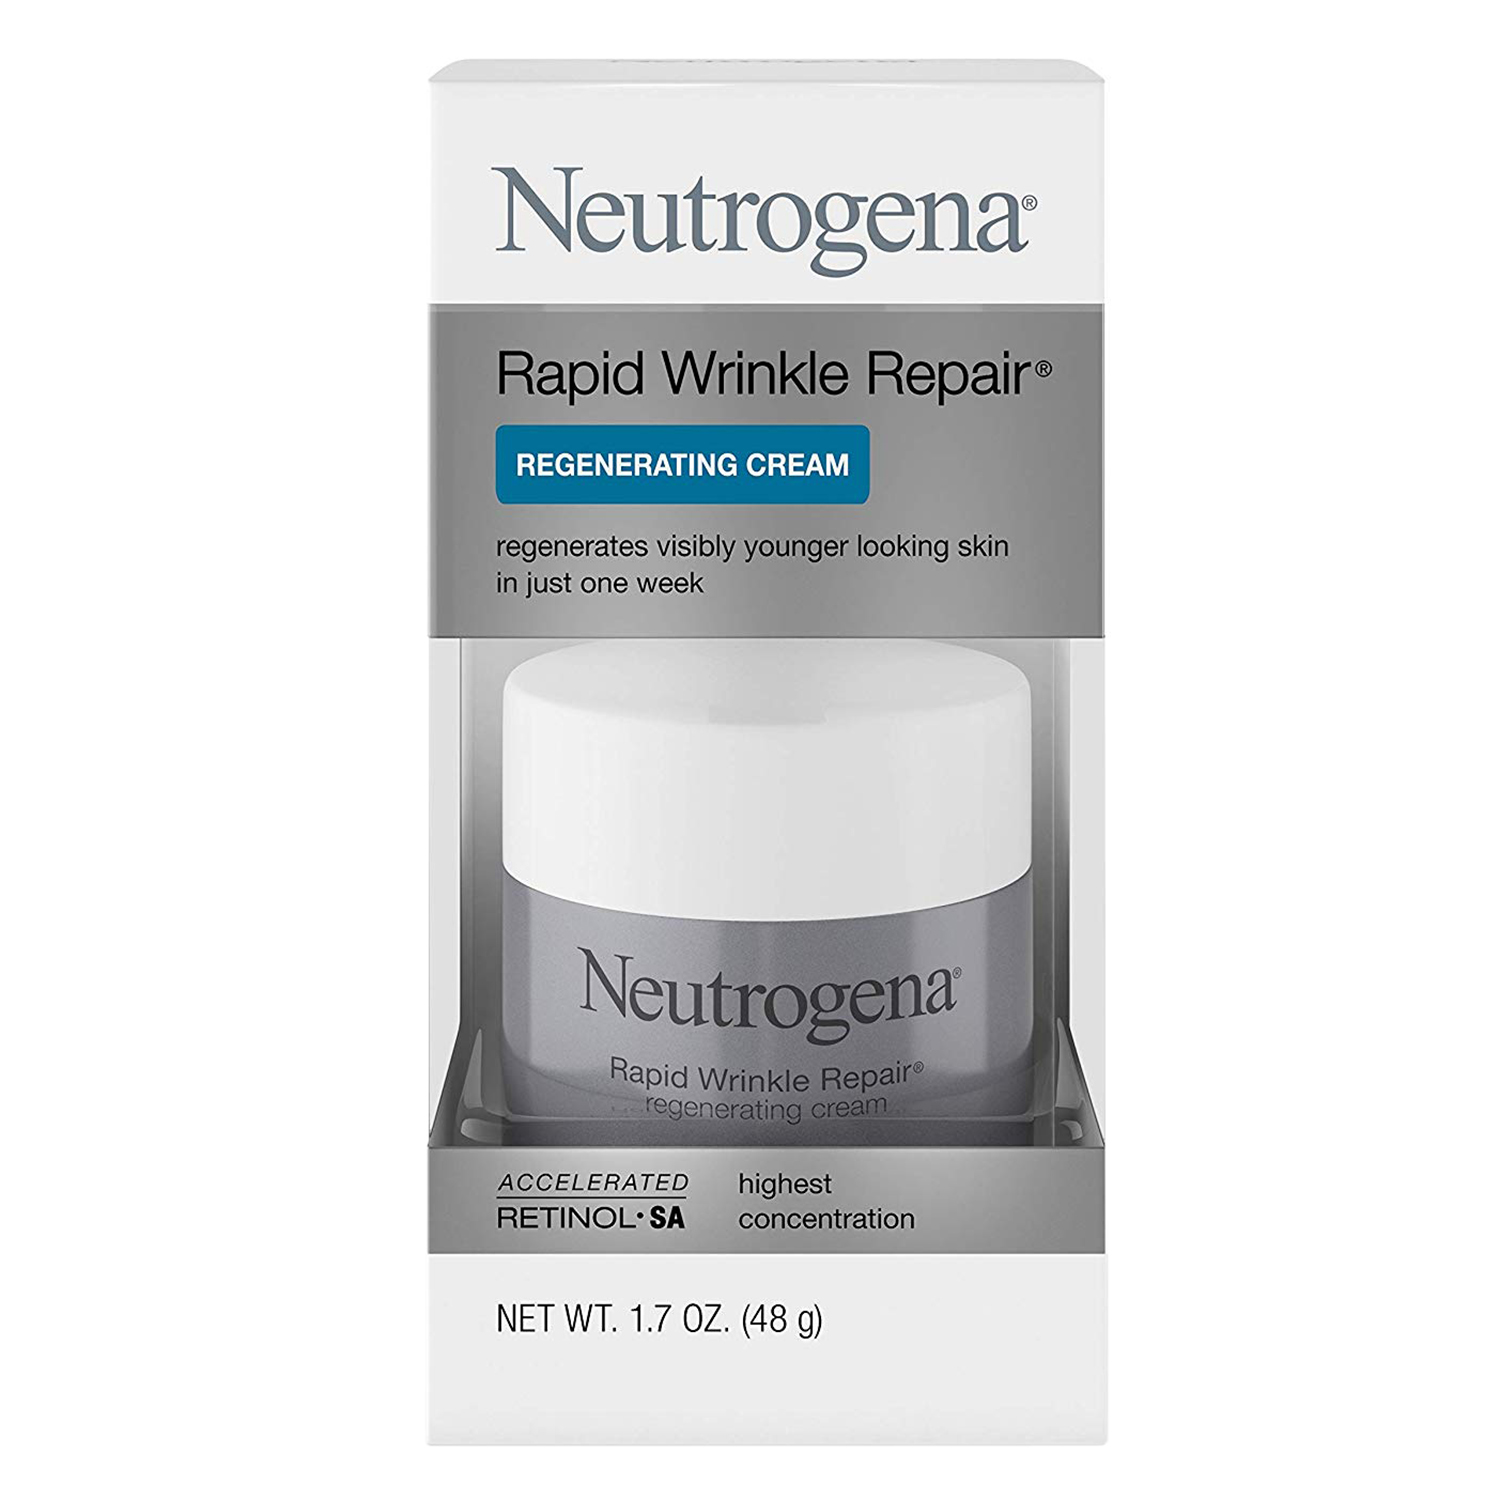 Neutrogena Rapid Wrinkle Repair Retinol Regenerating Face Cream & Hyaluronic Acid